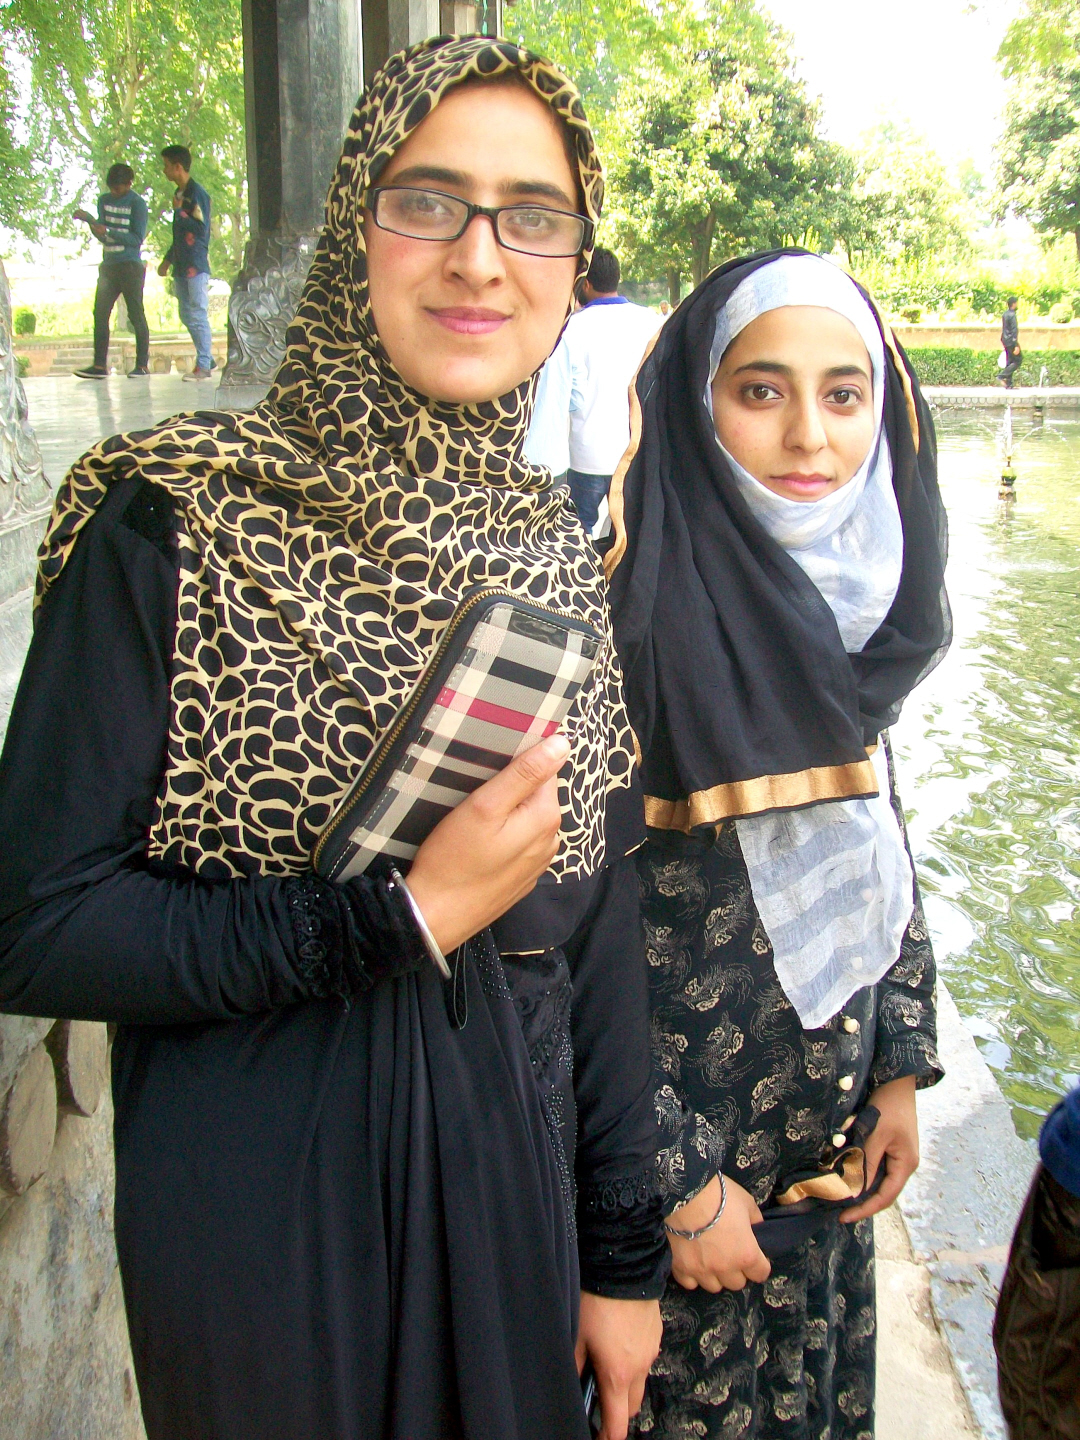 Best Friends Since Childhood - Students of Law & Eduction - Srinagar, Kashmir